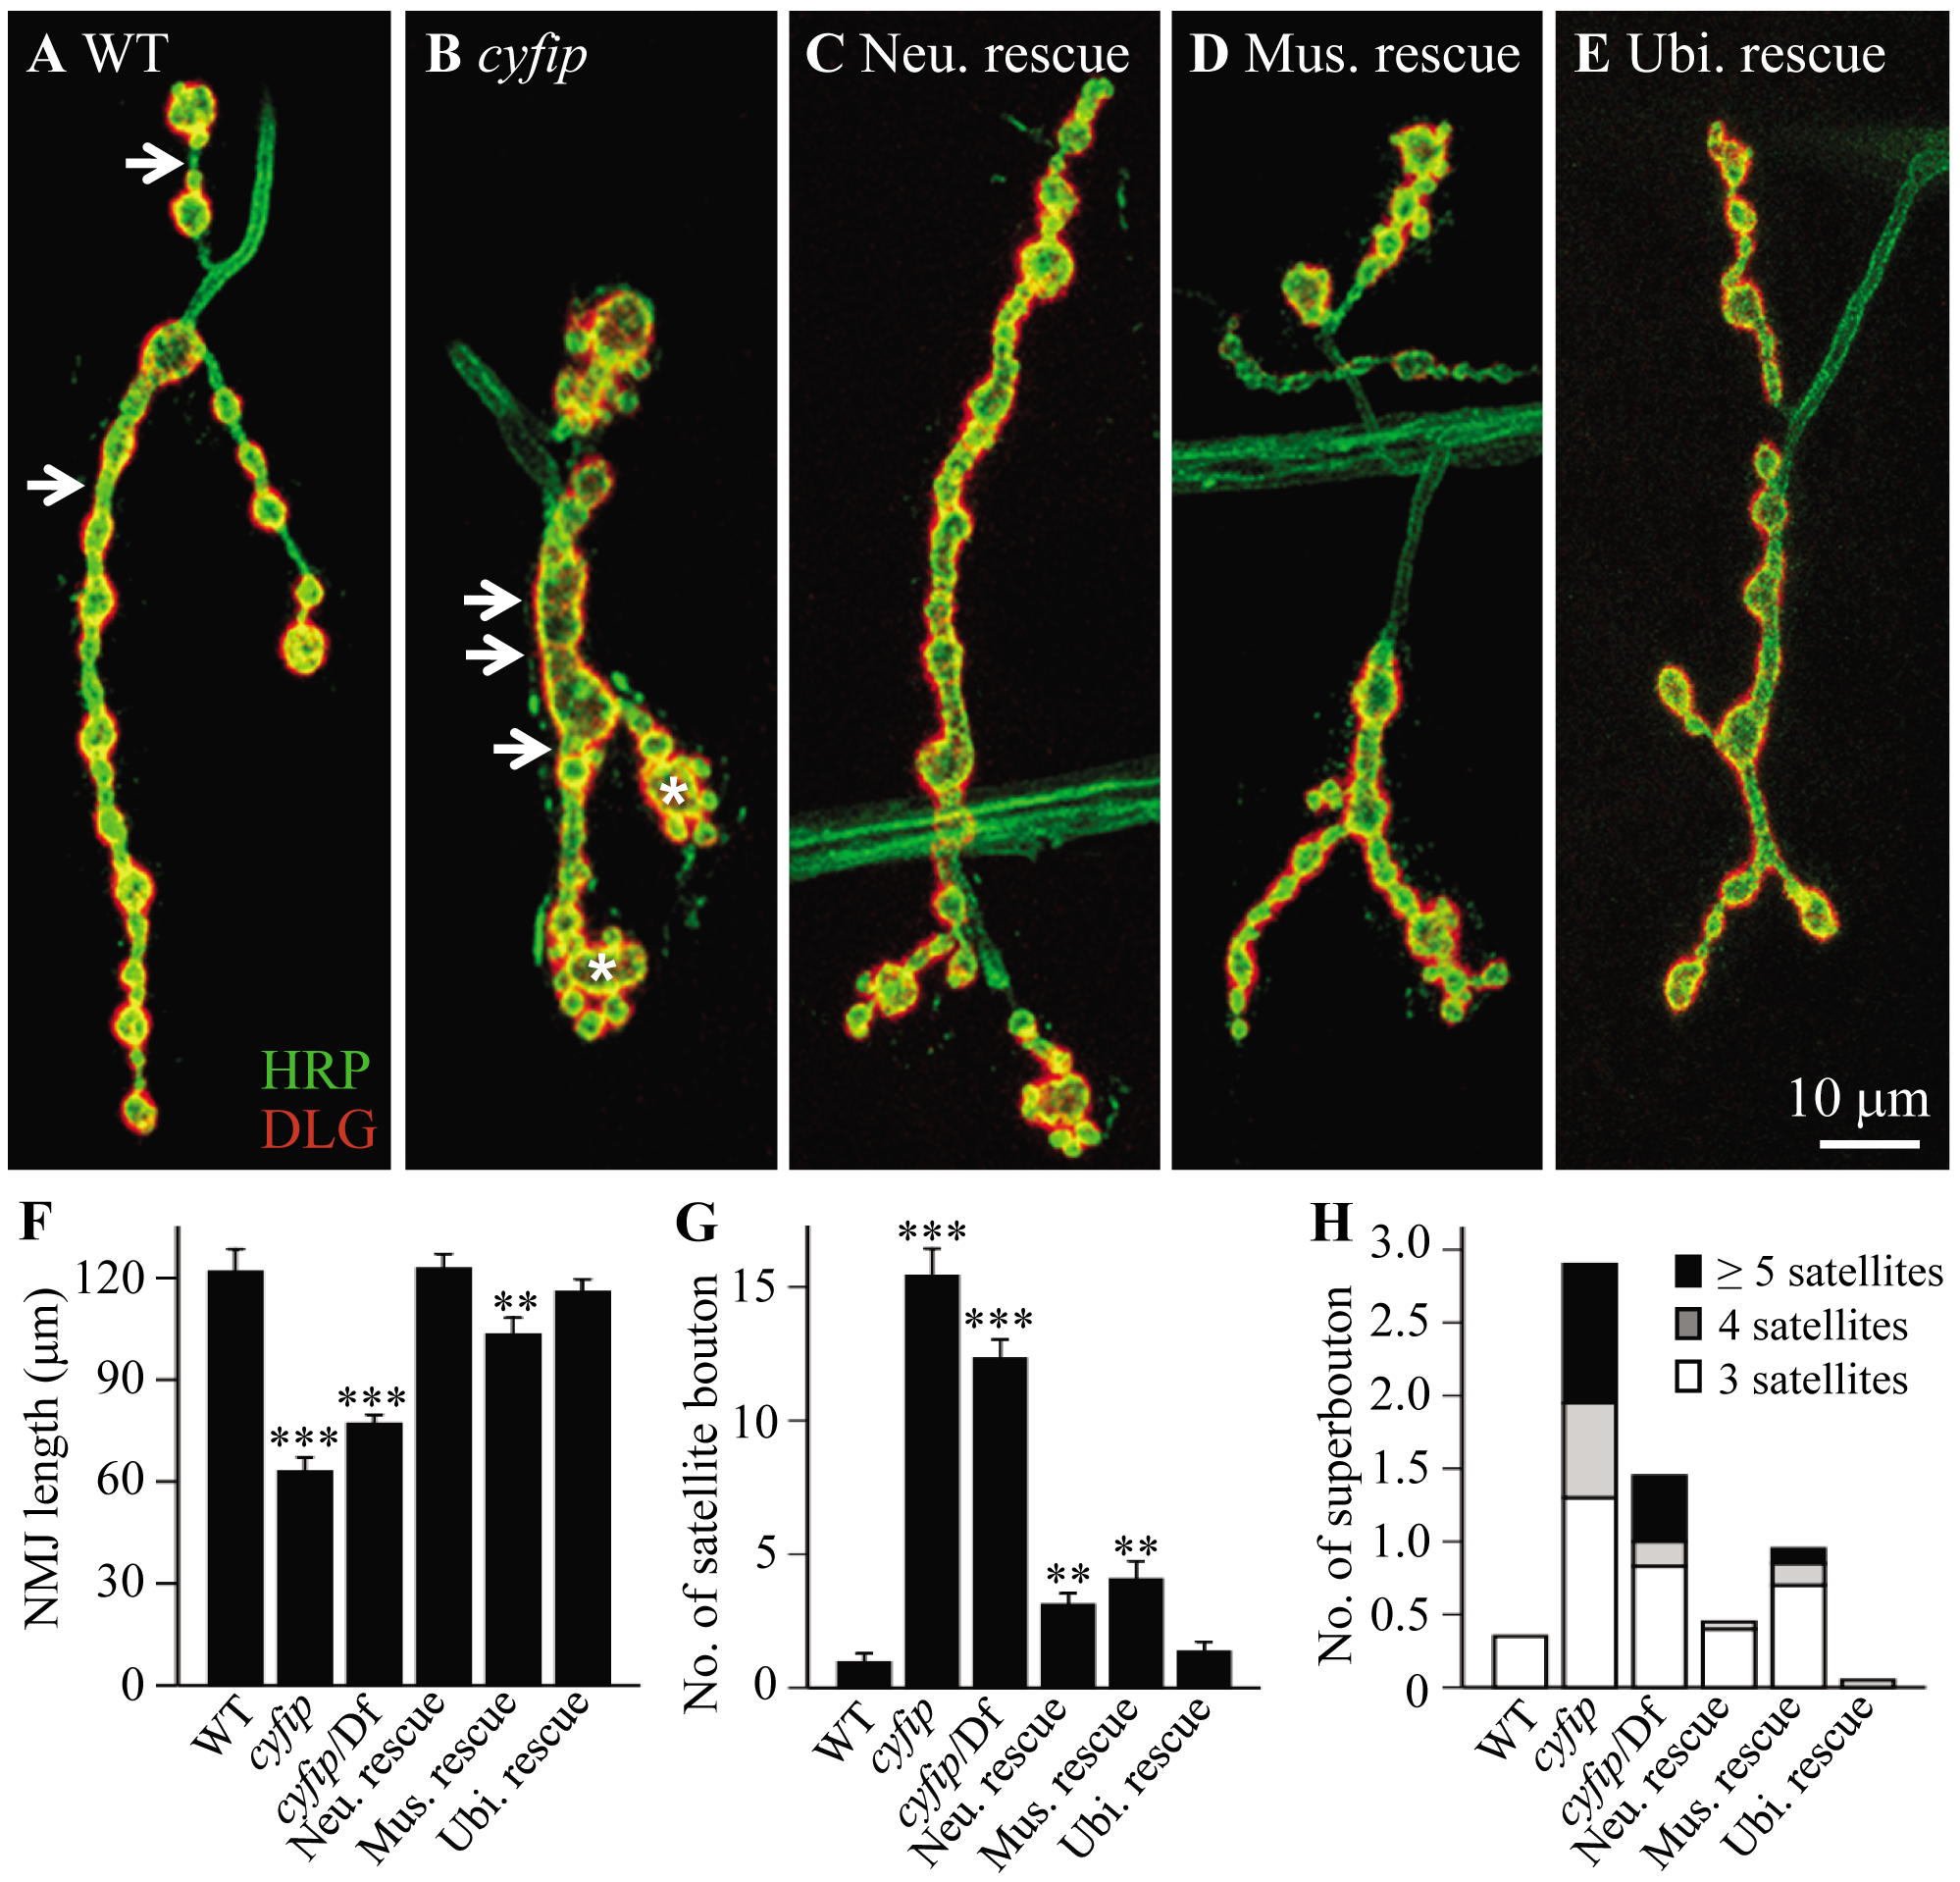 <i>cyfip</i> regulates synapse development.